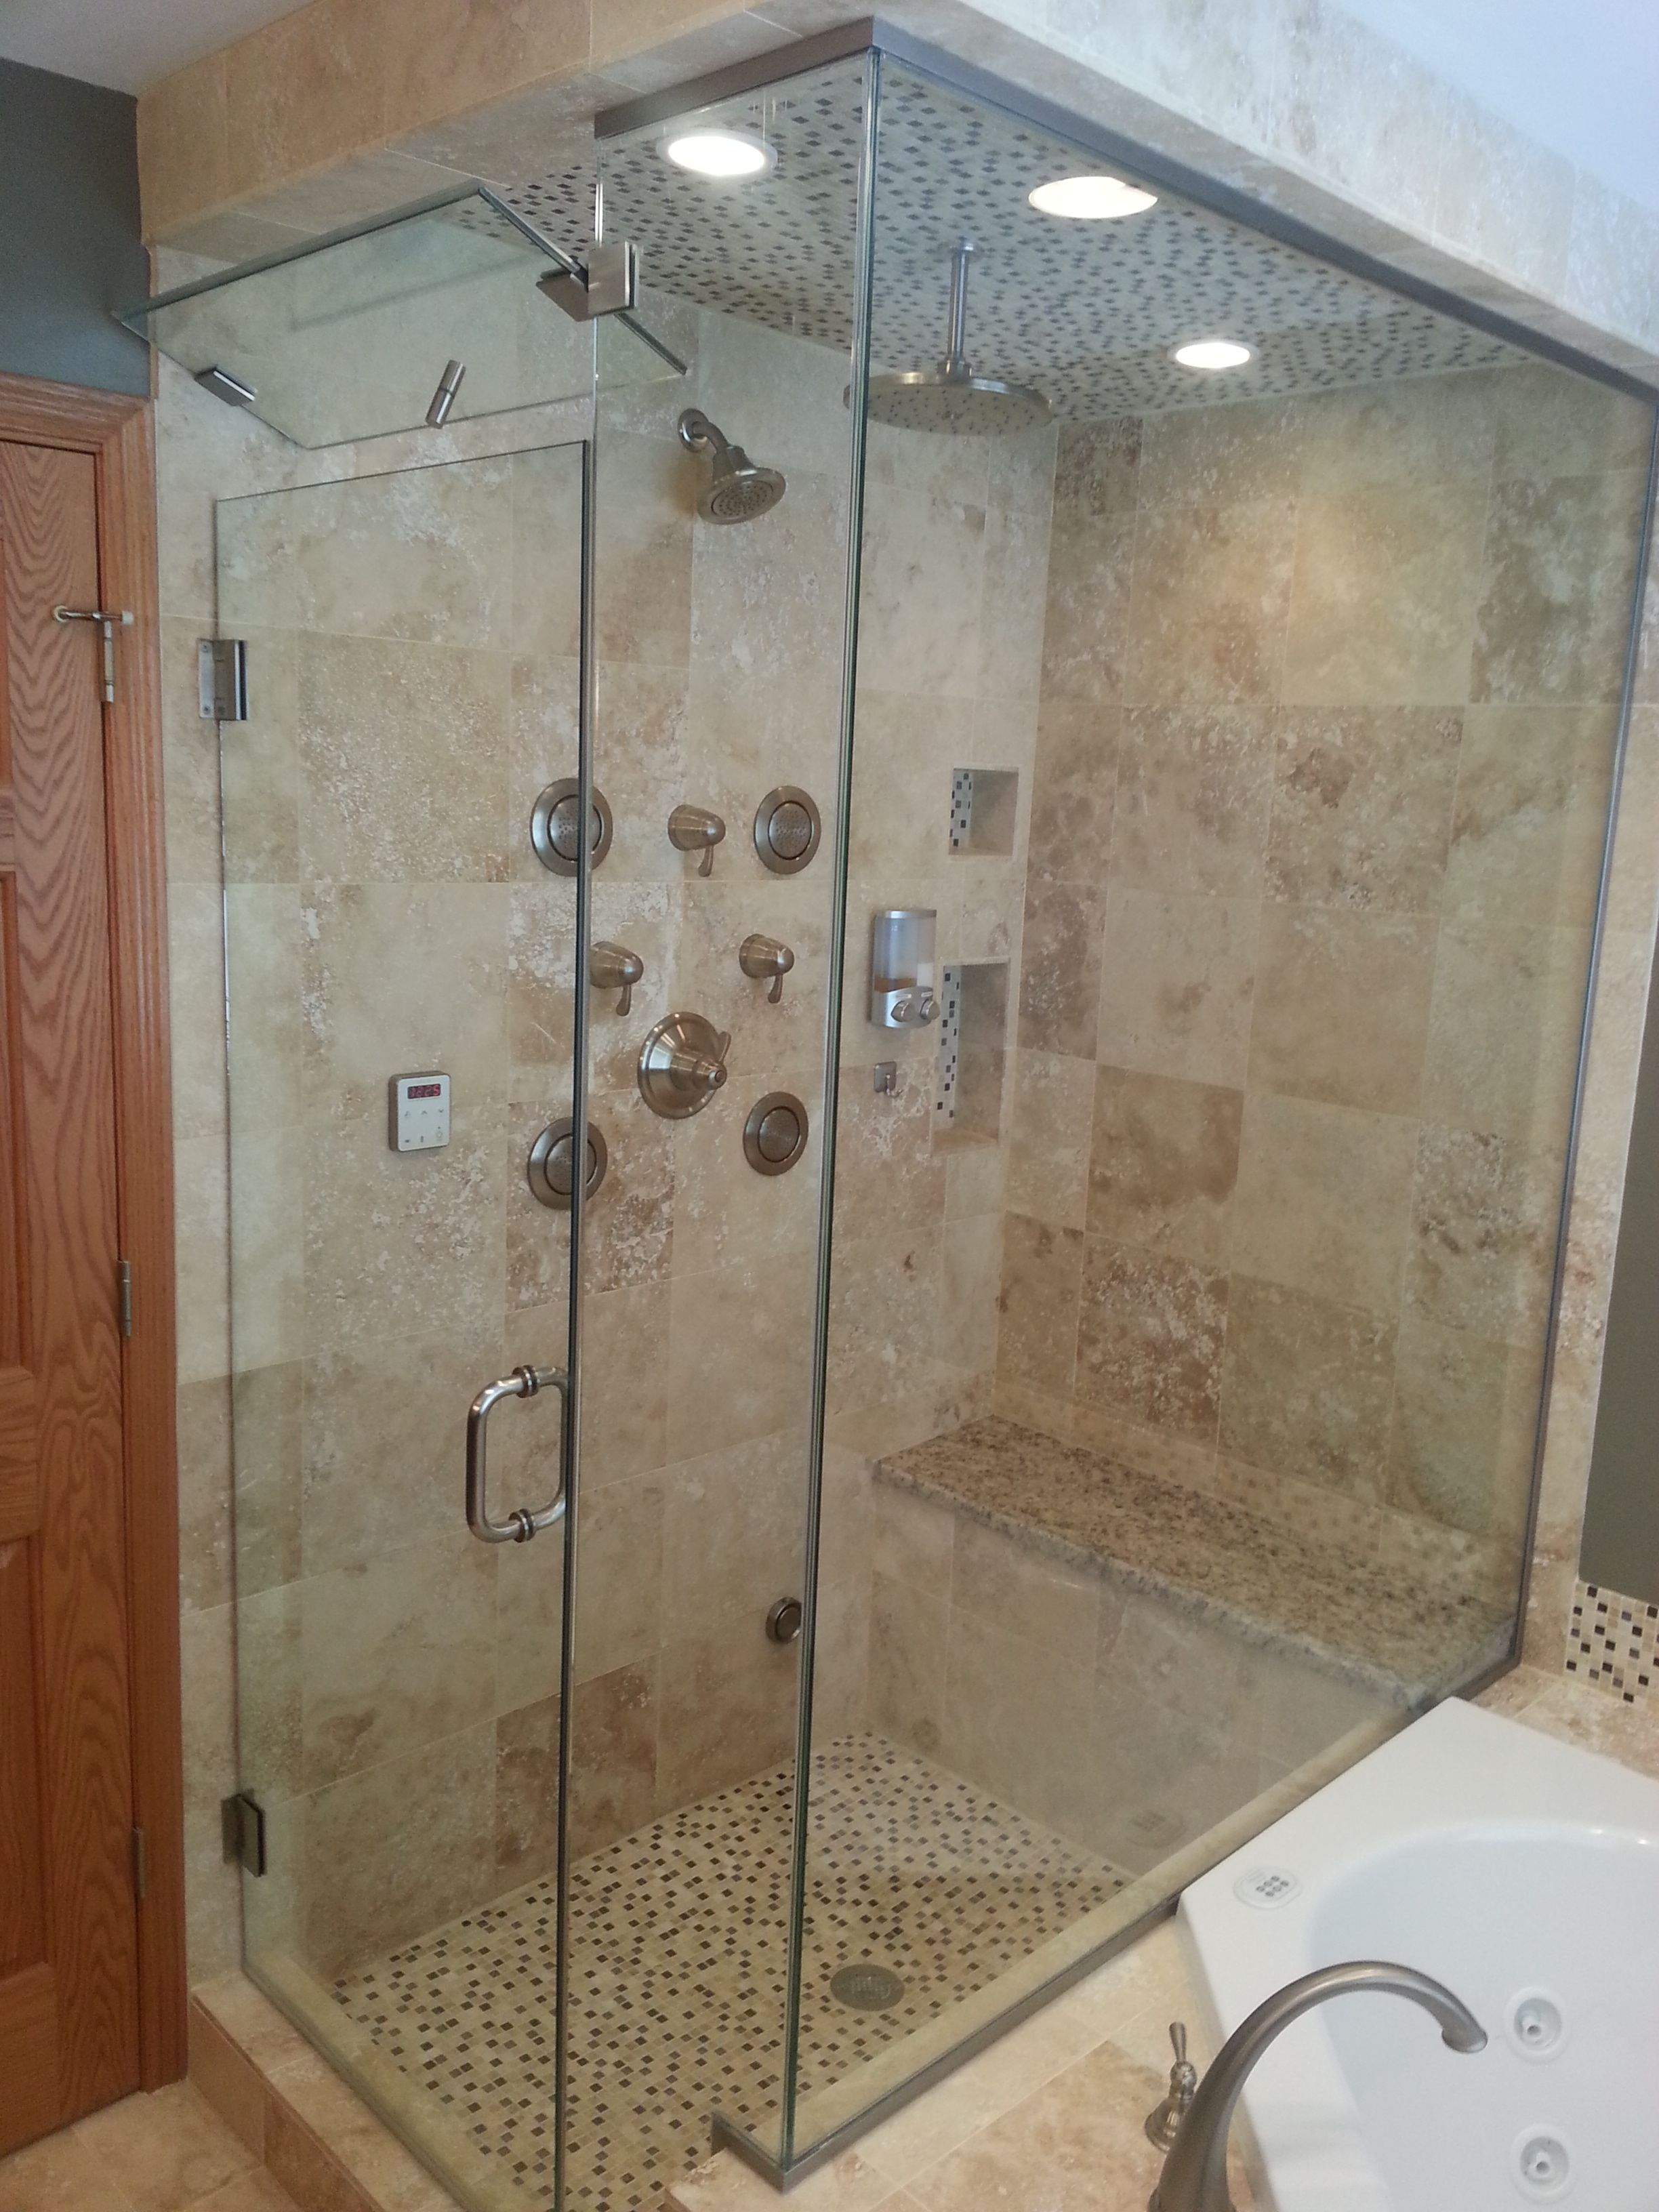 Tiliing By Santana (.com) Wales- Very elaborate steam shower with ...